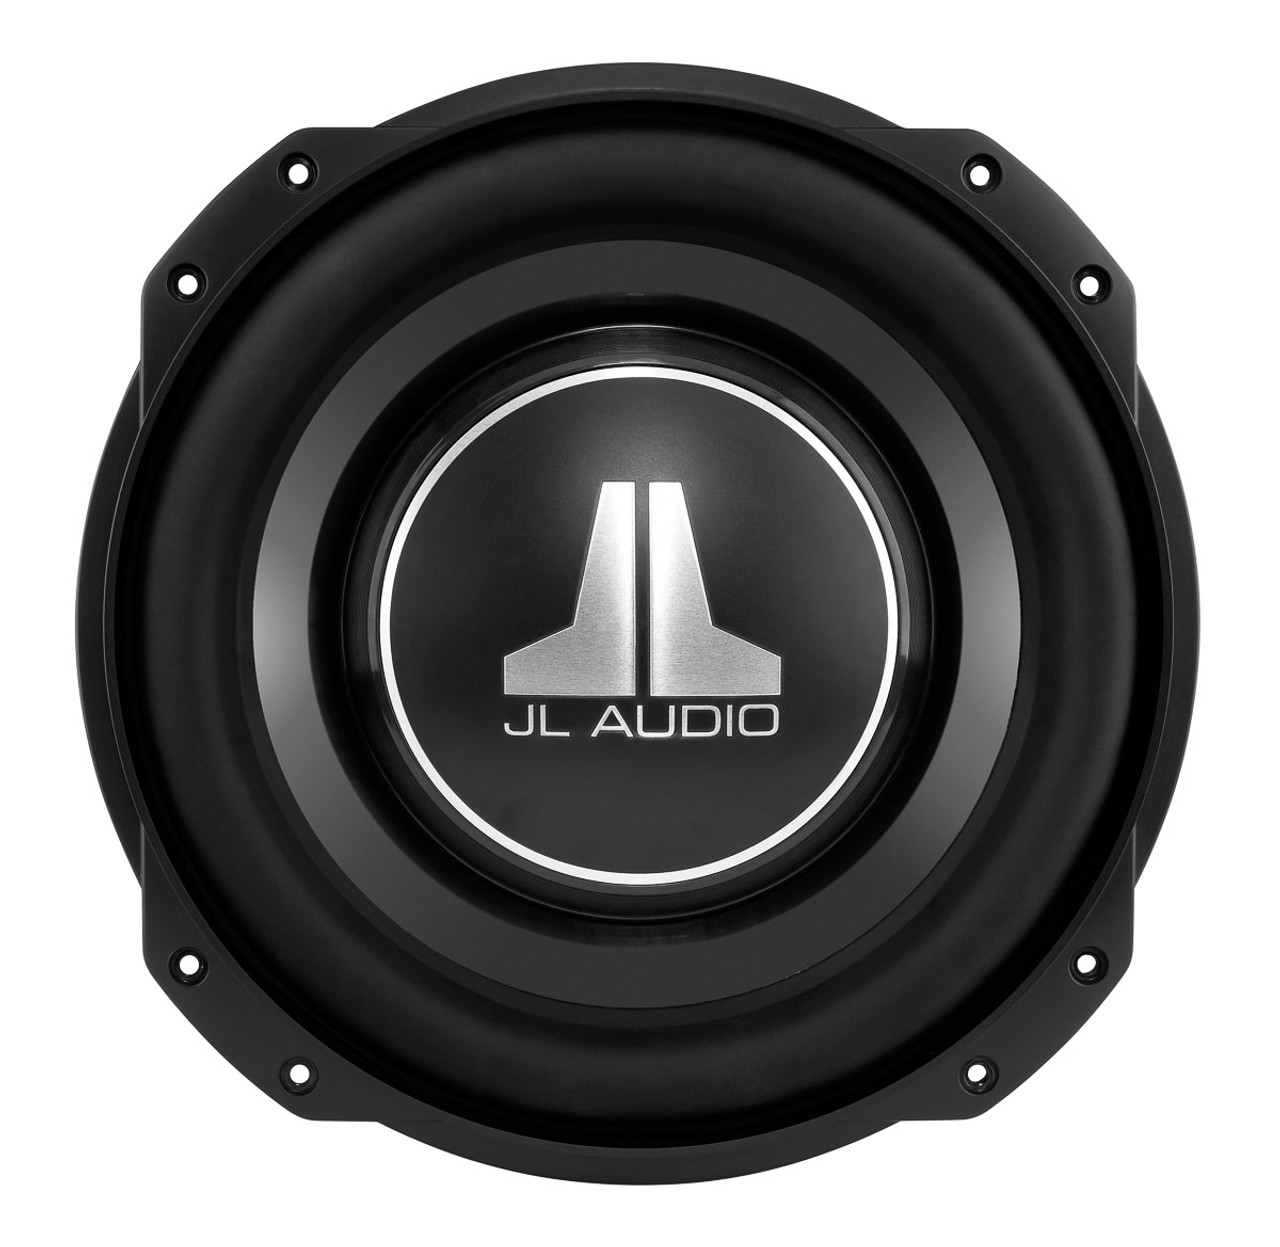 Jl Audio 10tw3 D8 10 Inch Thin Line Subwoofer Driver 400w Dual 8 Single Voice Coil Woofer With 2 Ohm Coils Wired In Https D3d71ba2asa5ozcloudfrontnet 12015581 Images